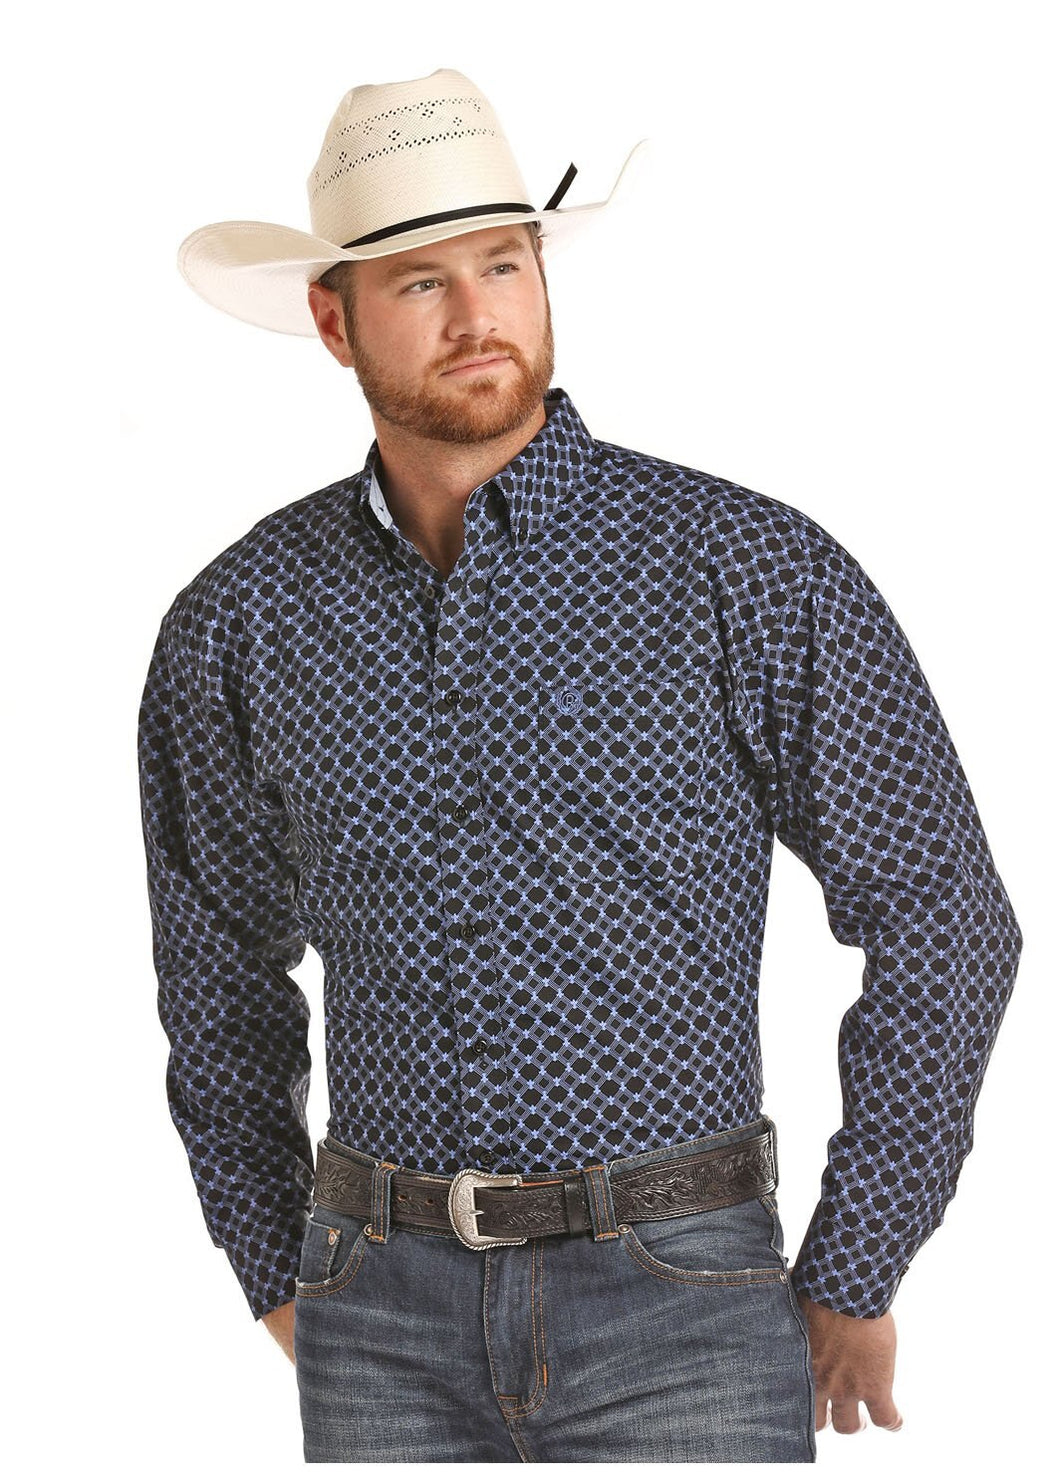 Panhandle Slim Men's Royal Blue And Black Diamond Print Snap Shirt